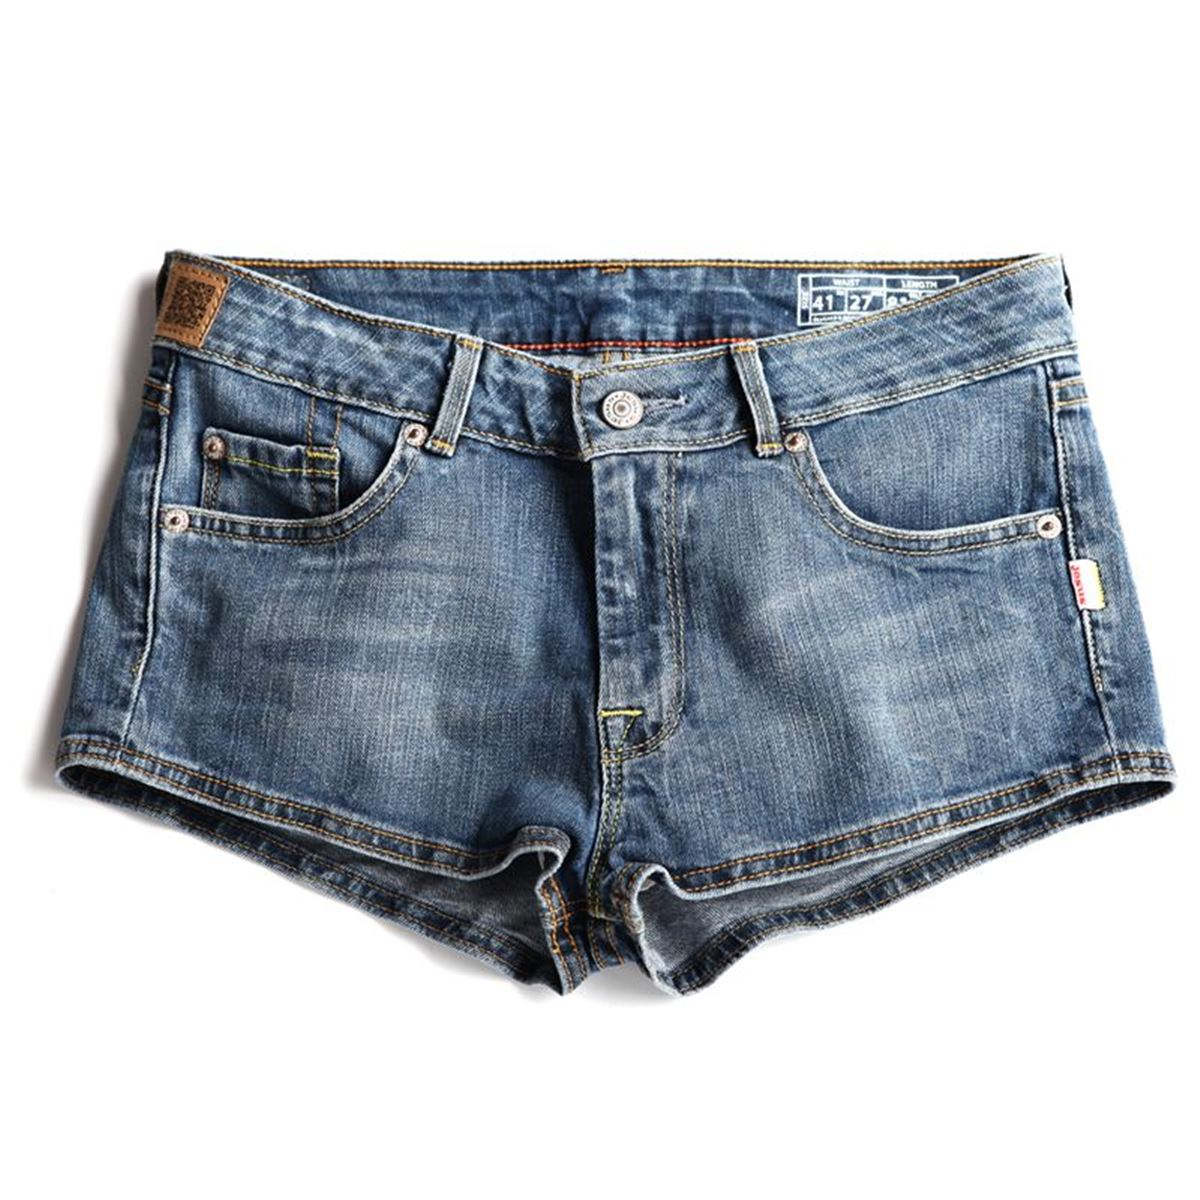 Jesus Jeans 5 Pockets Shorts Denim Woman